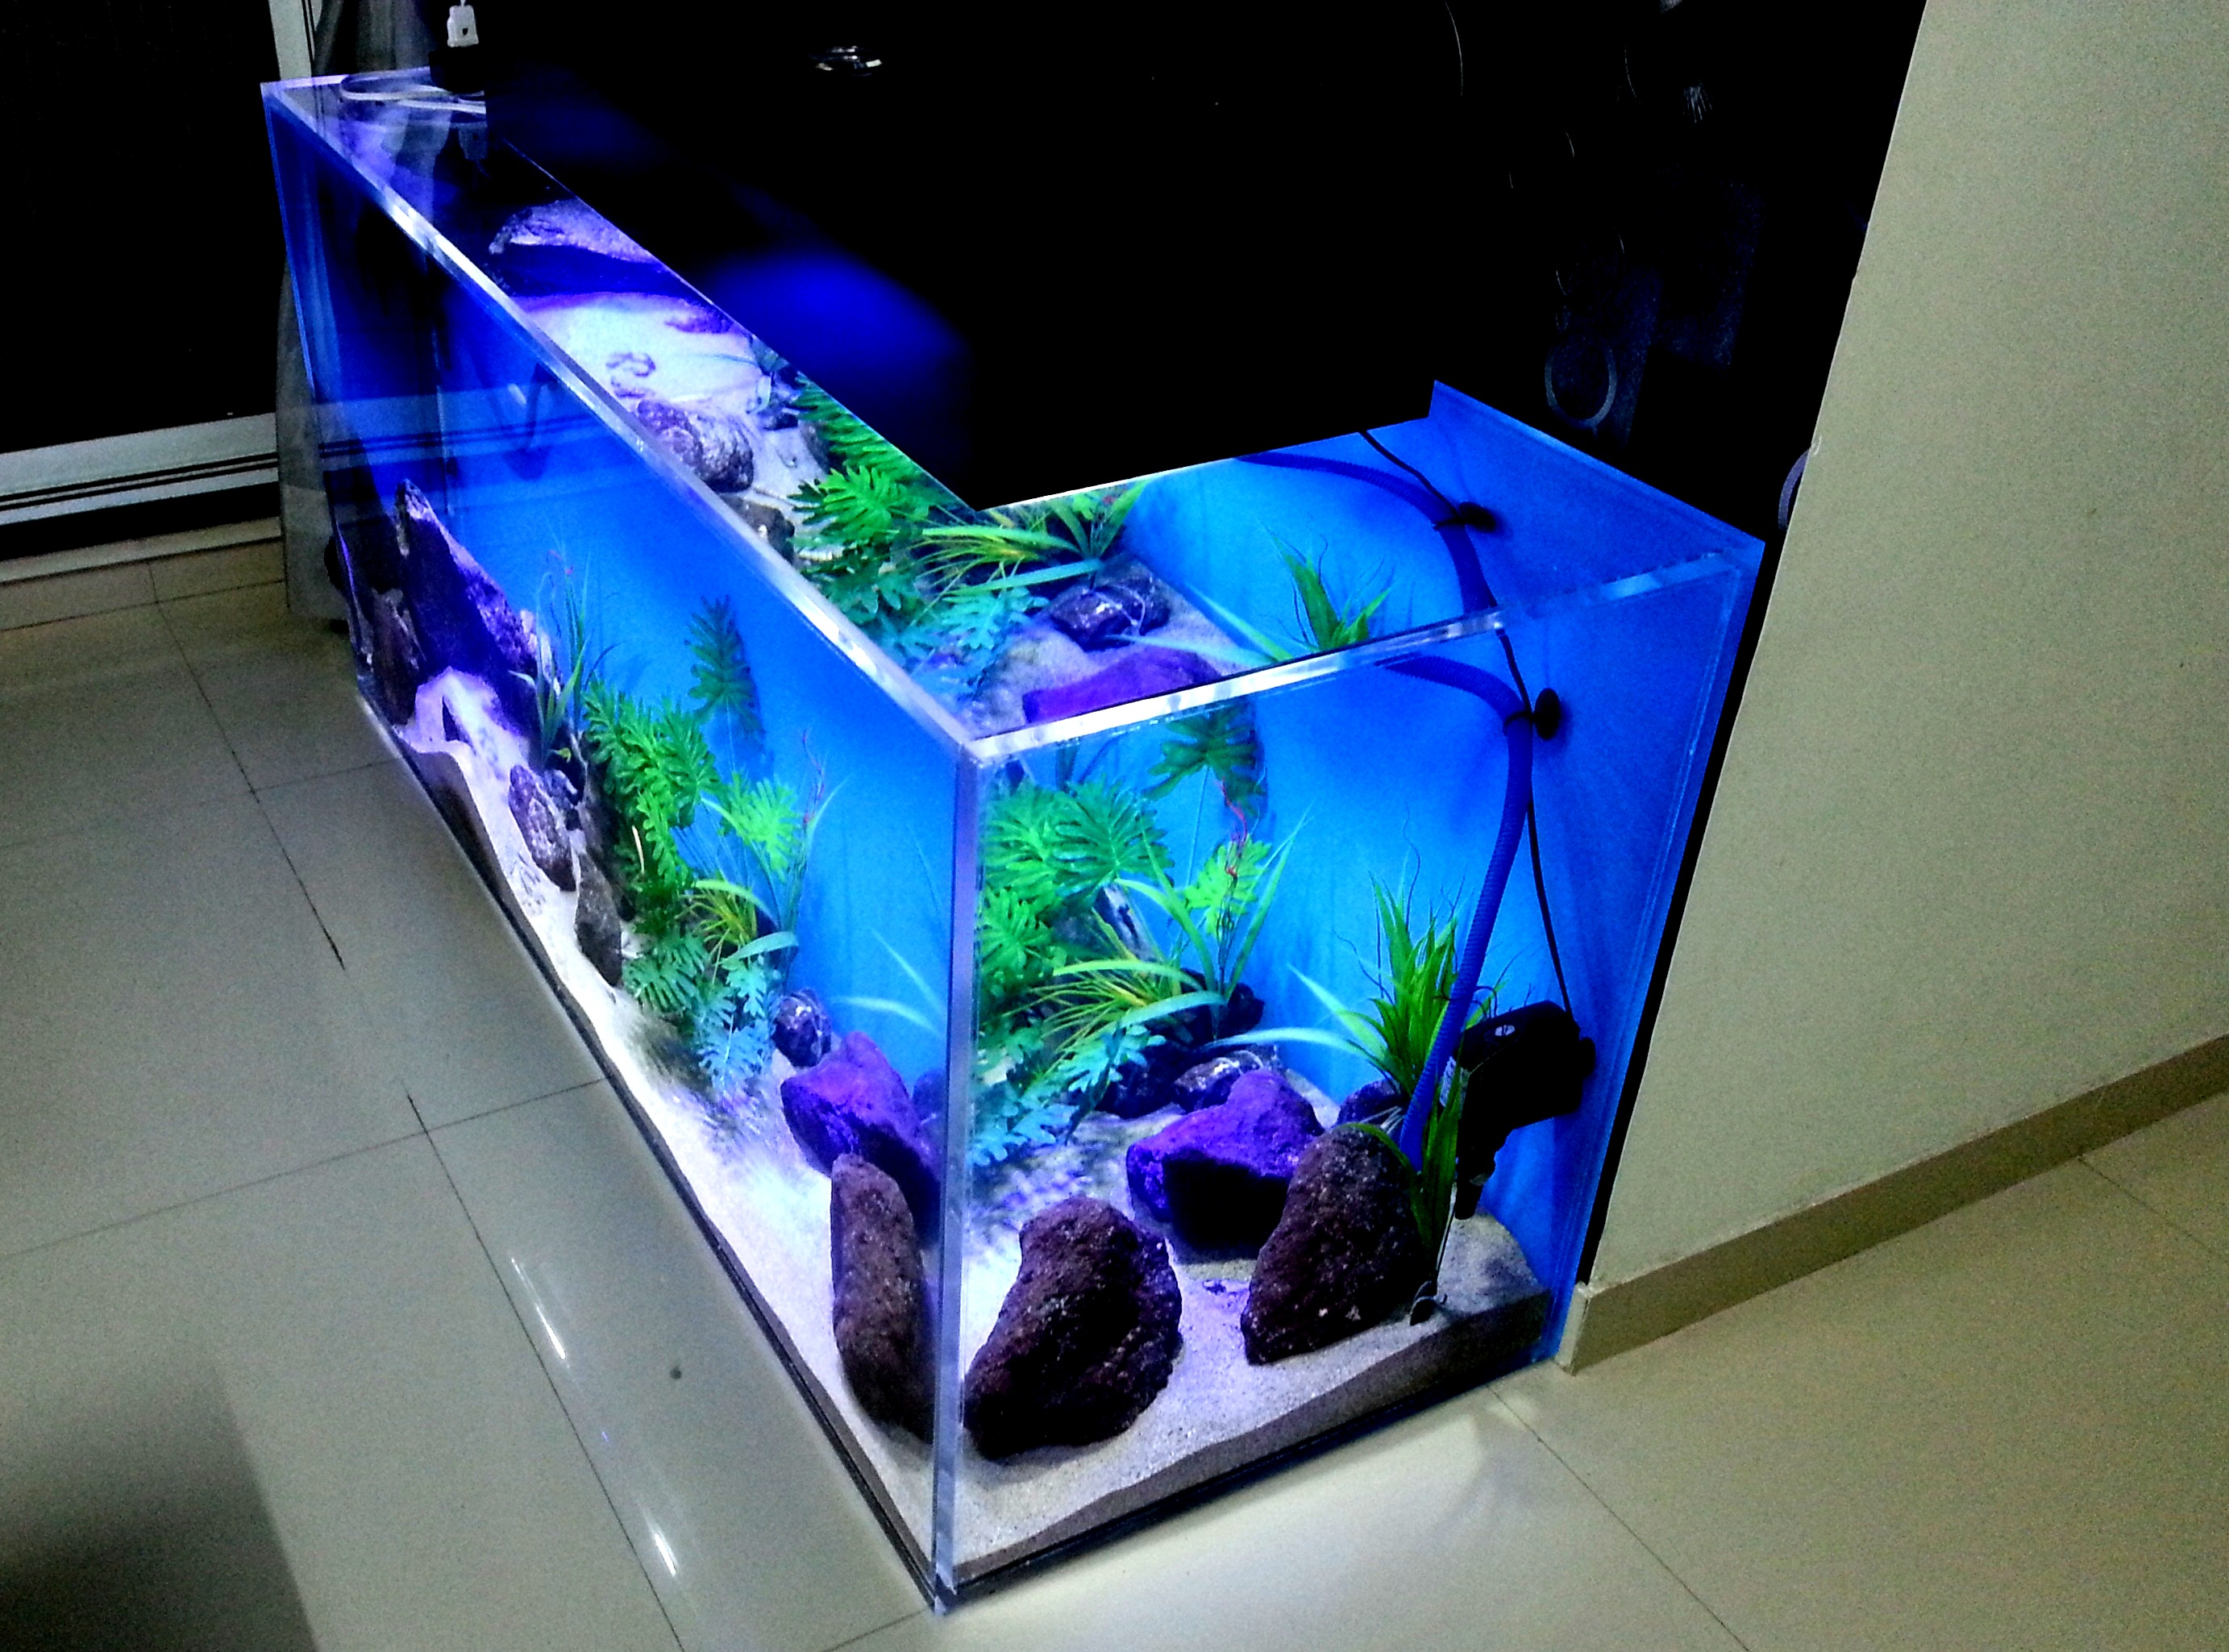 Freshwater fish for aquarium in india - Fish Tank India Resonating Simplicity